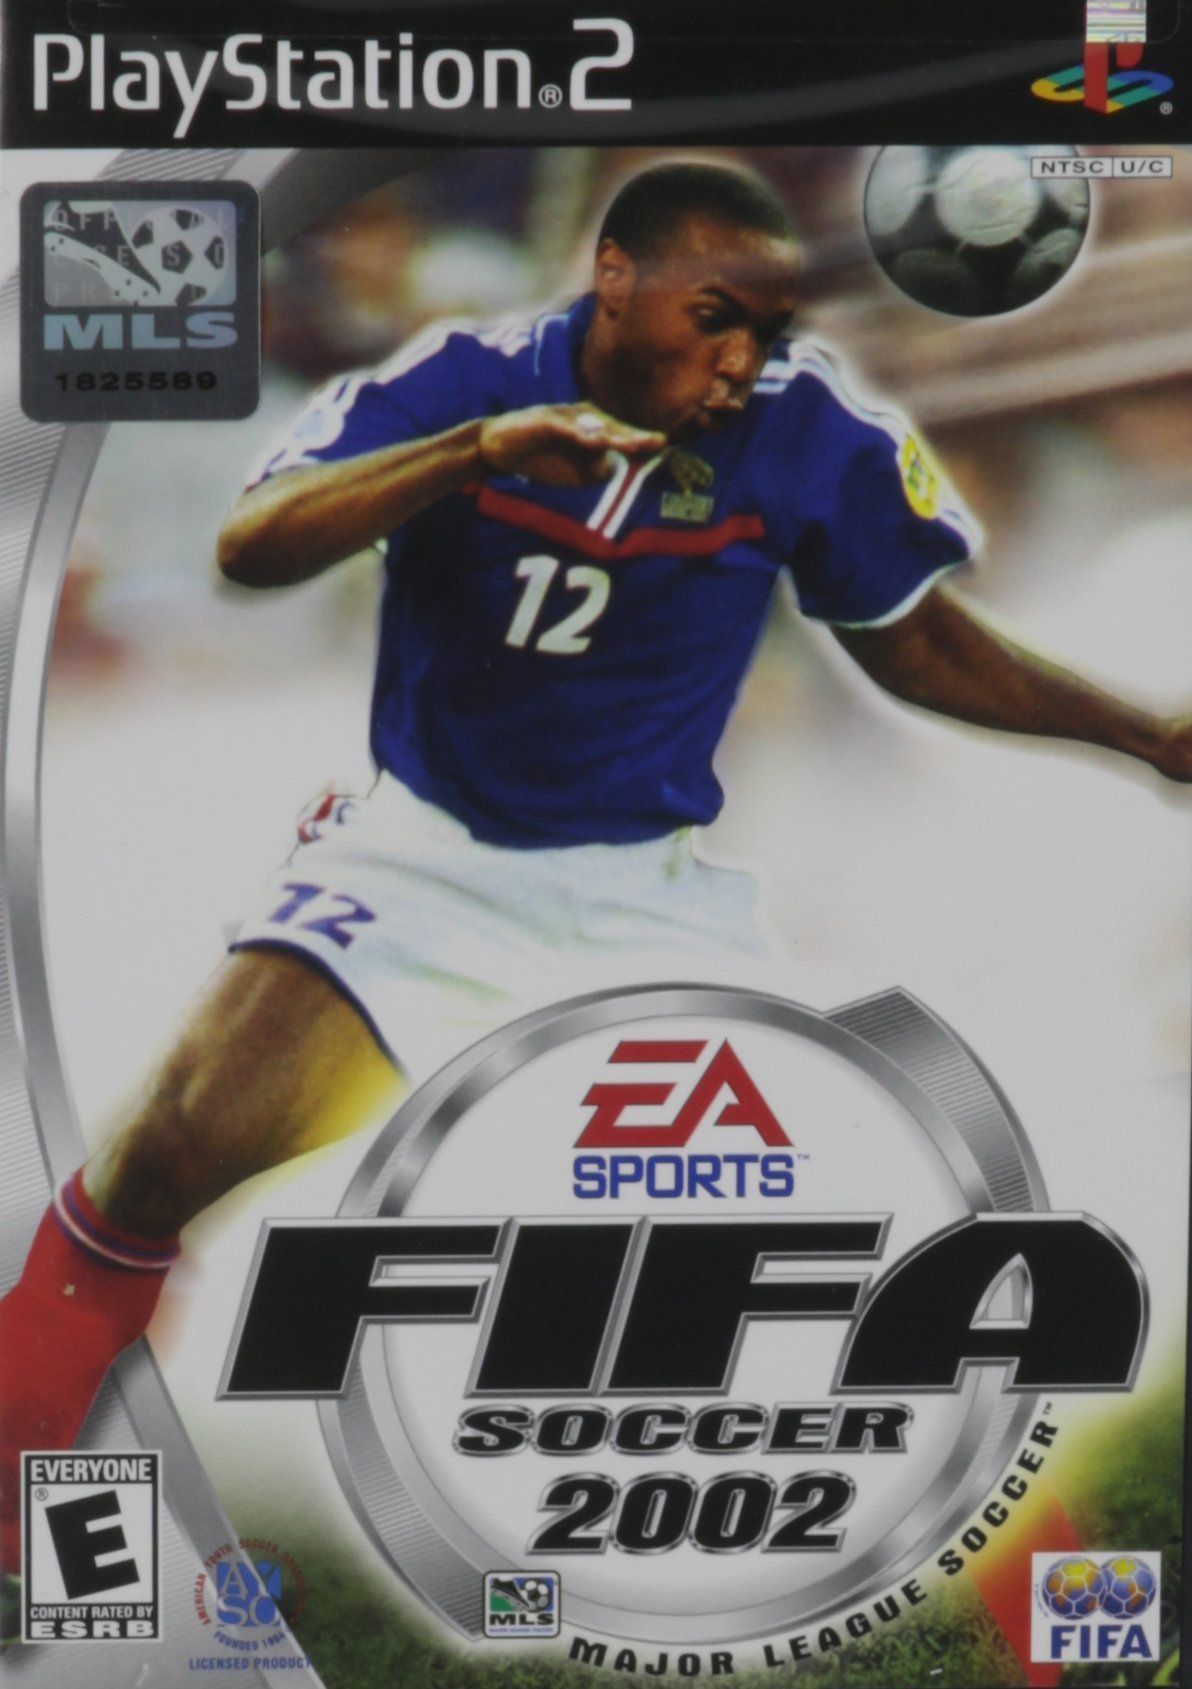 FIFA Soccer 2002 >>> You could get more information by